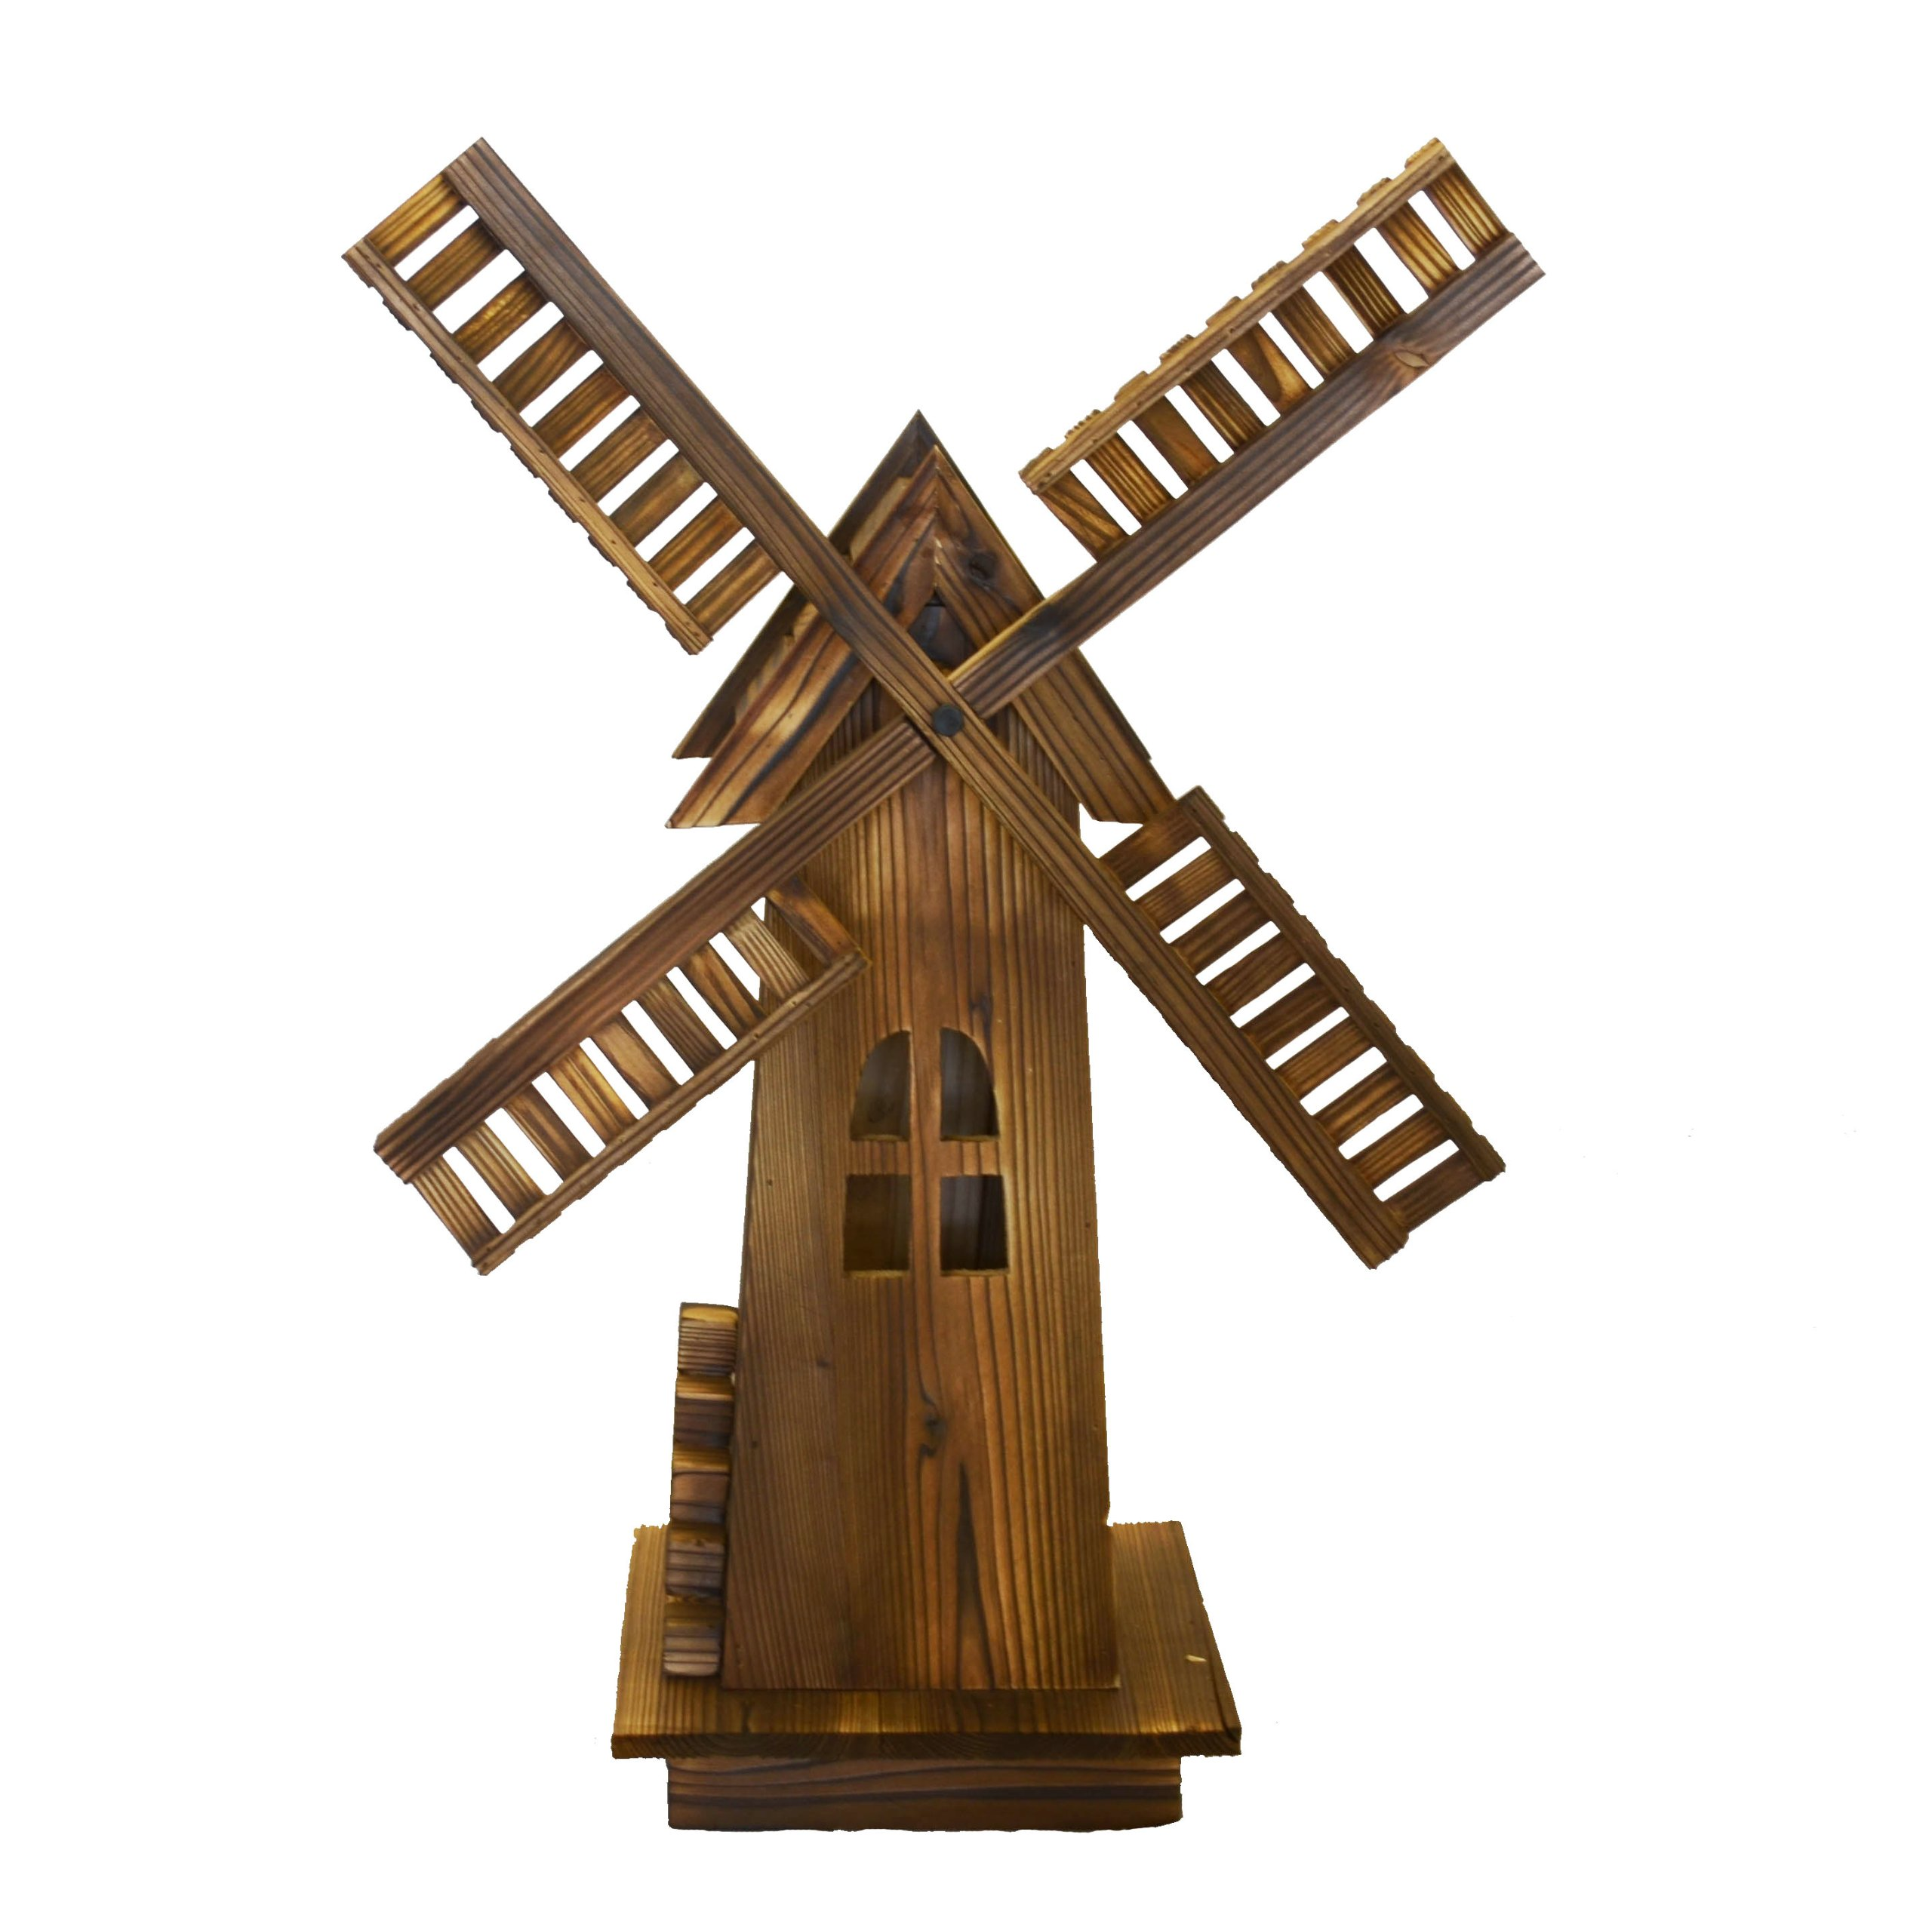 Wooden Dutch Windmill - Classic Old-fashioned Windmill For Garden, Patio Product SKU: PL50015